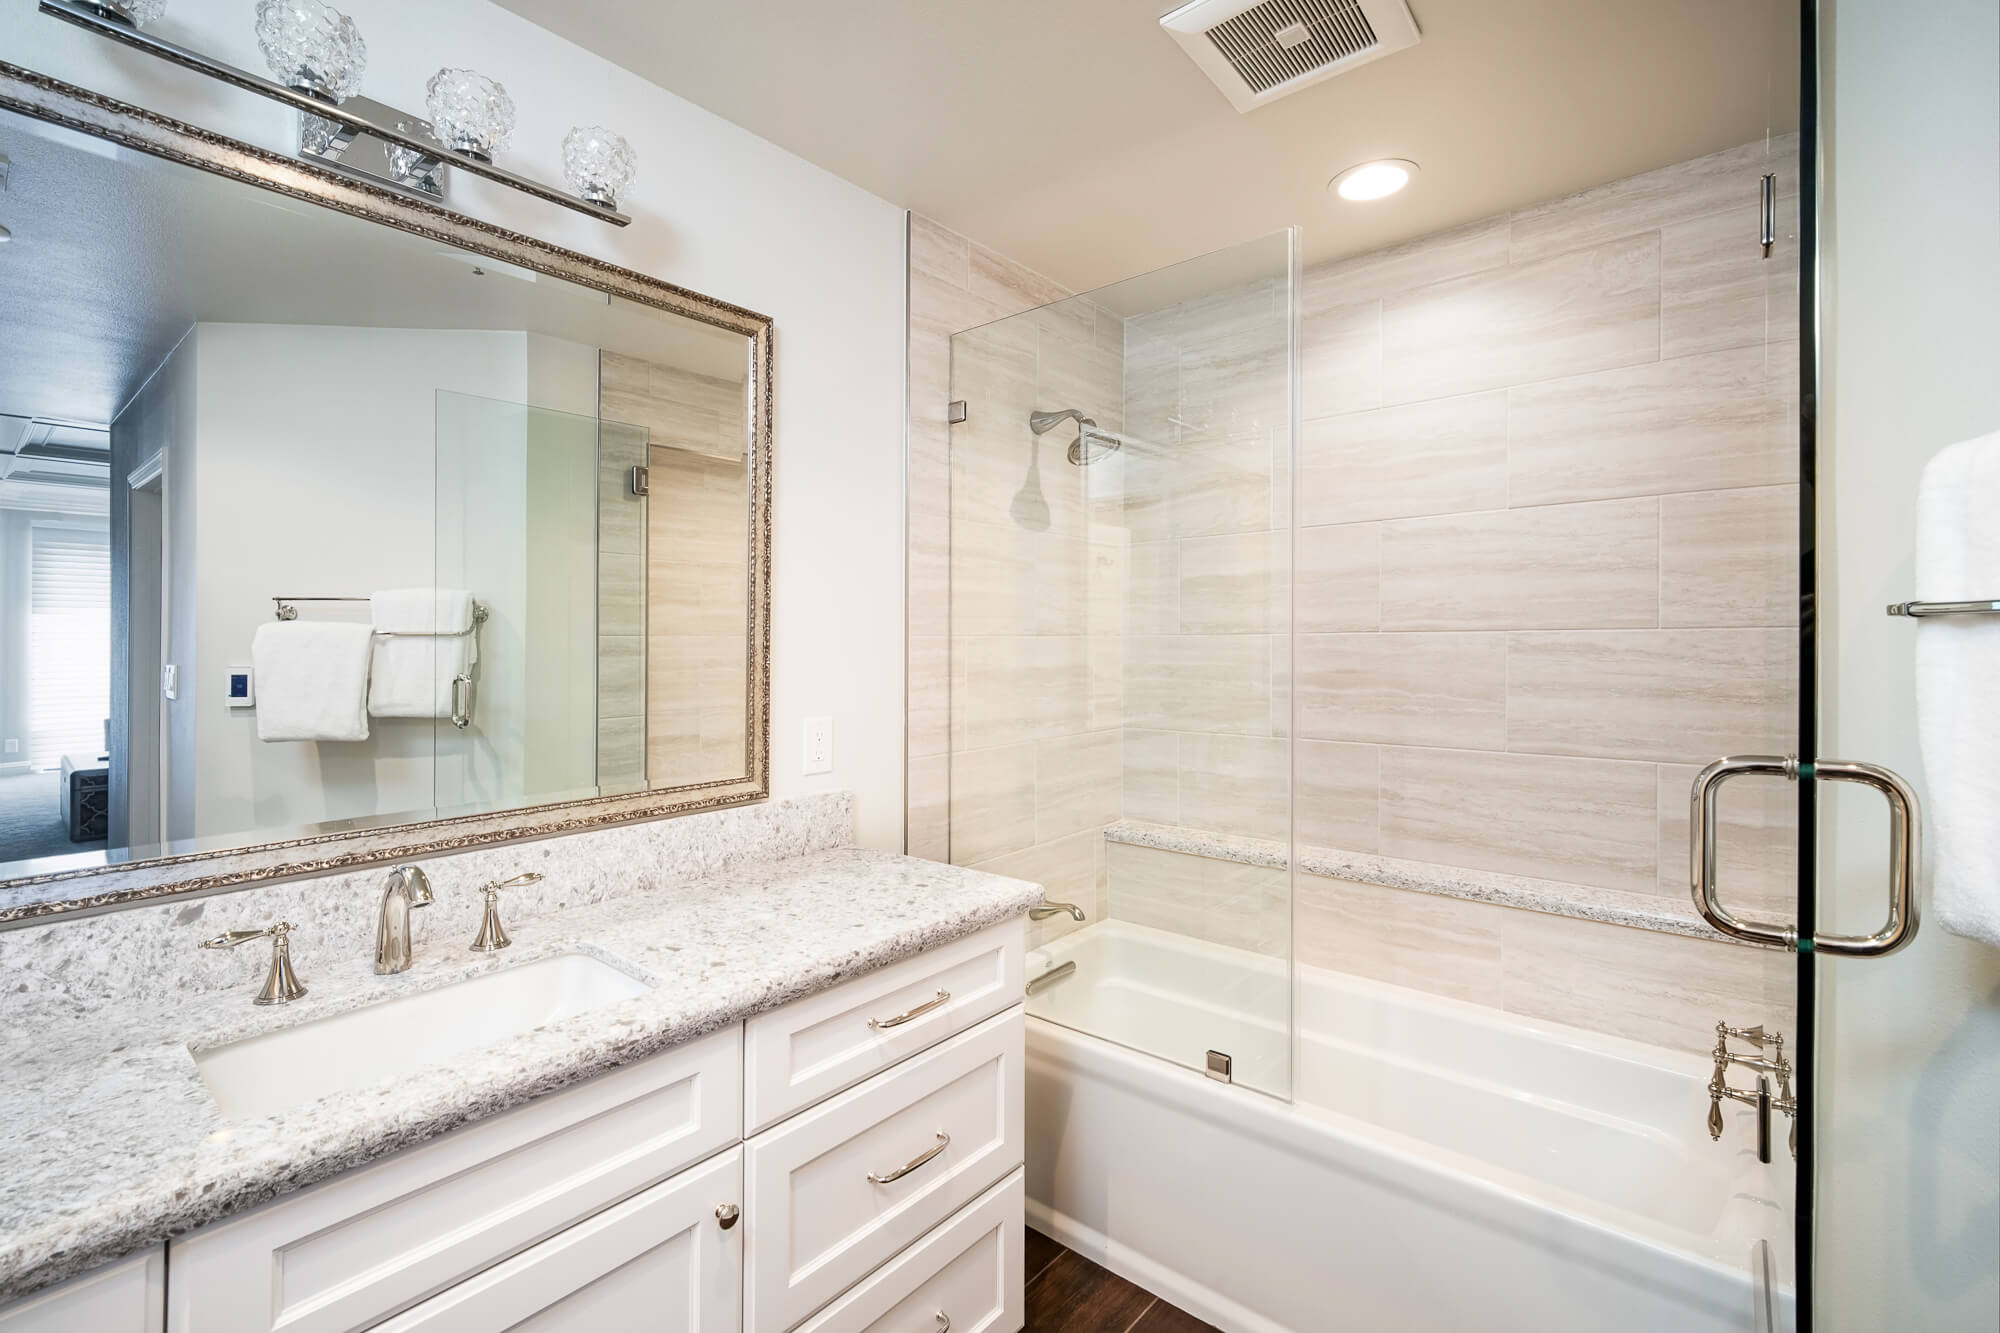 Bathroom remodel design guide bathtubs showers sinks - Images of small bathroom remodels ...